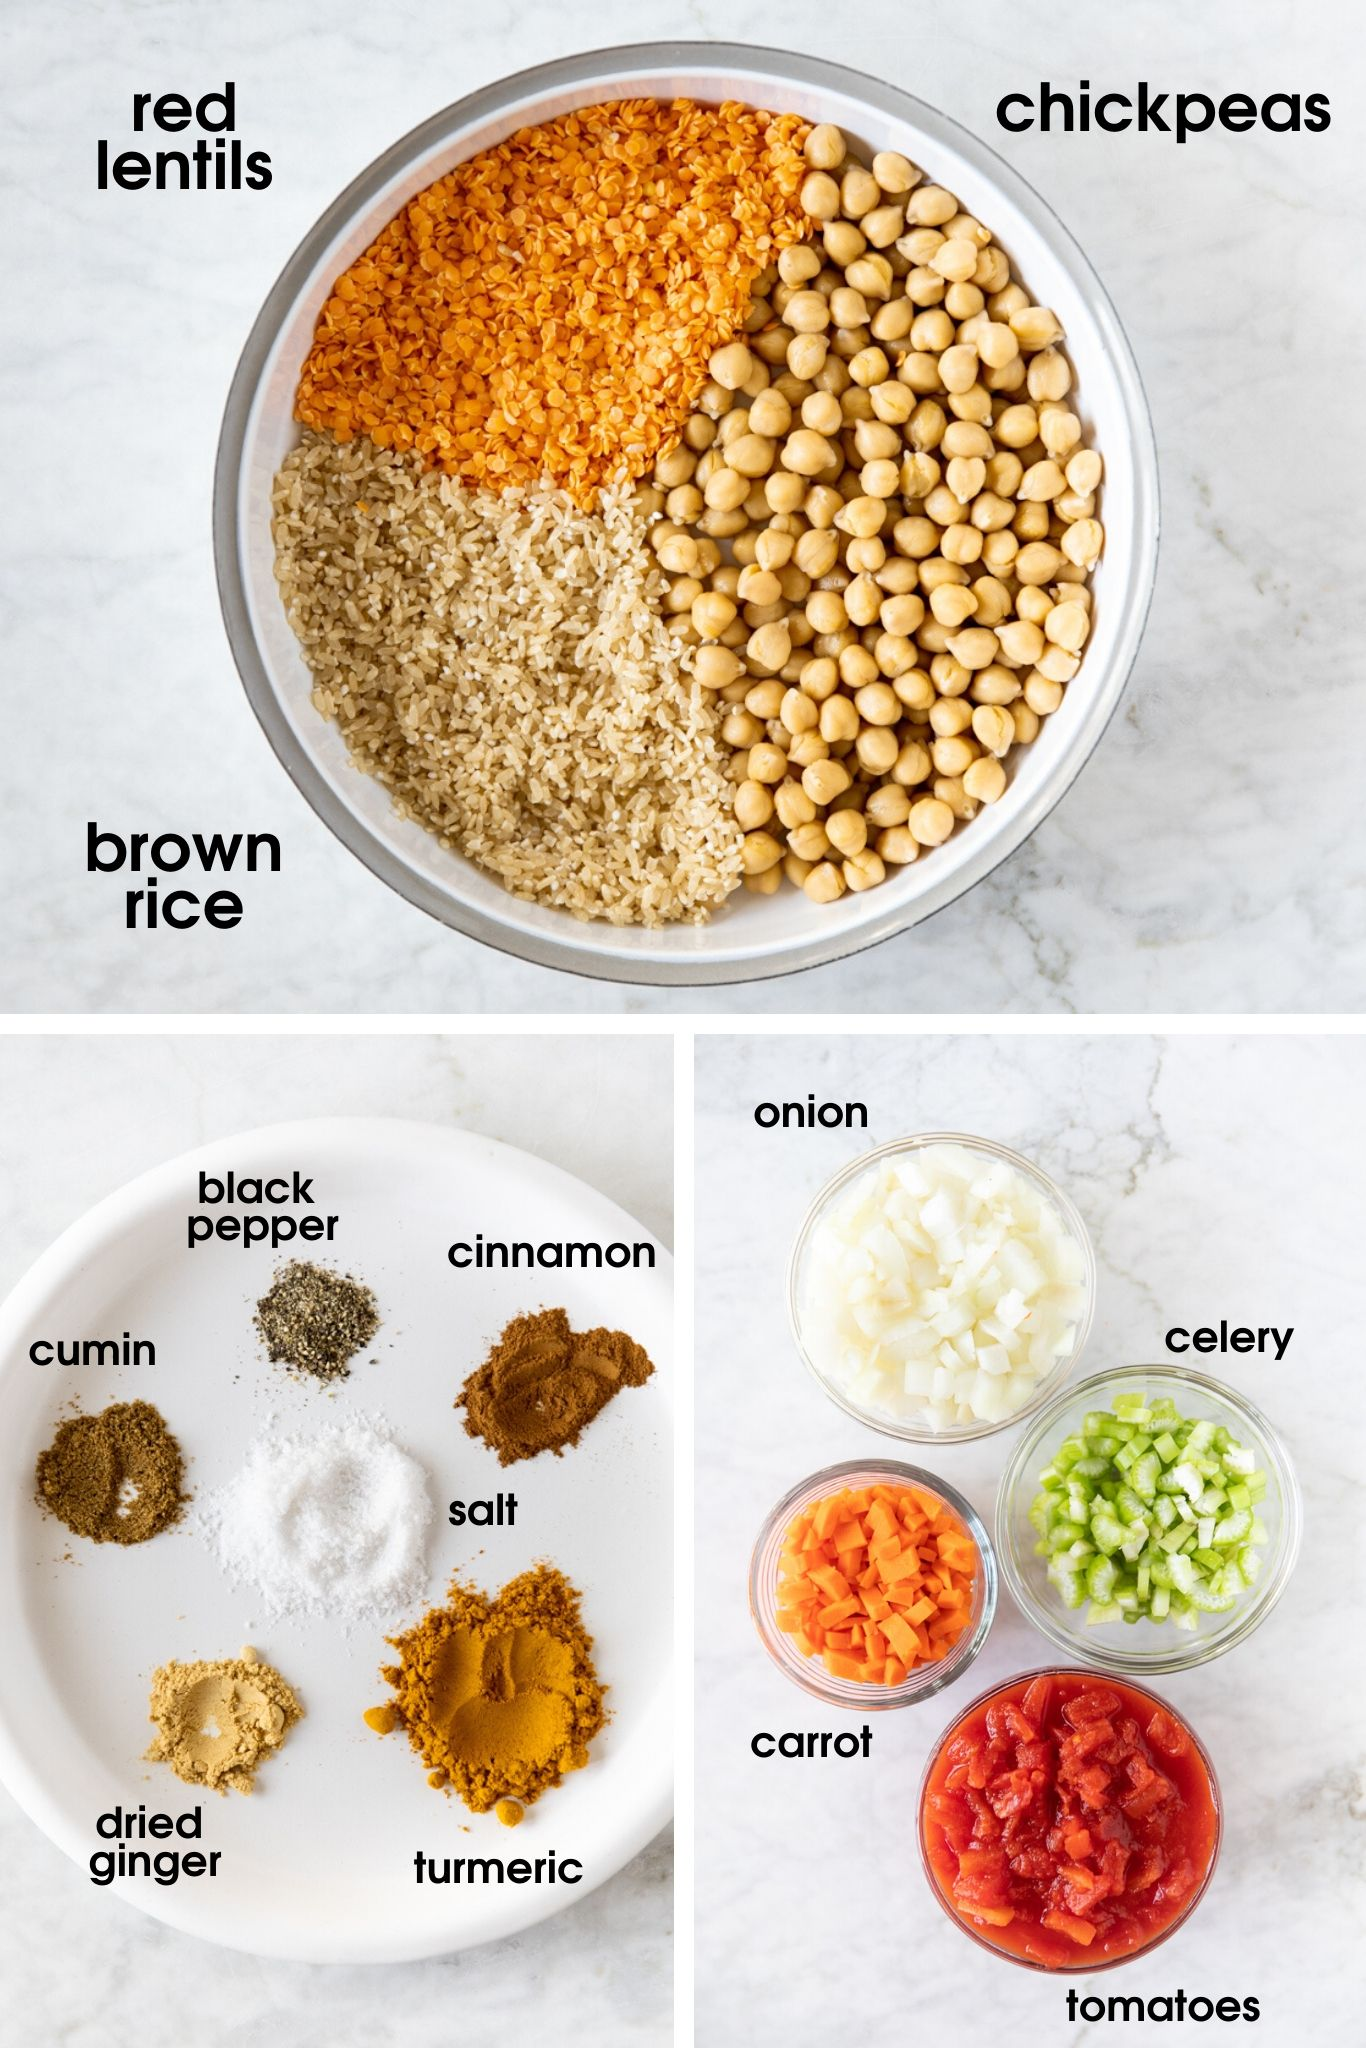 Ingredients to make harira, a North African stew made with chickpeas, lentils, rice and vegetables.| from verygoodcook.com